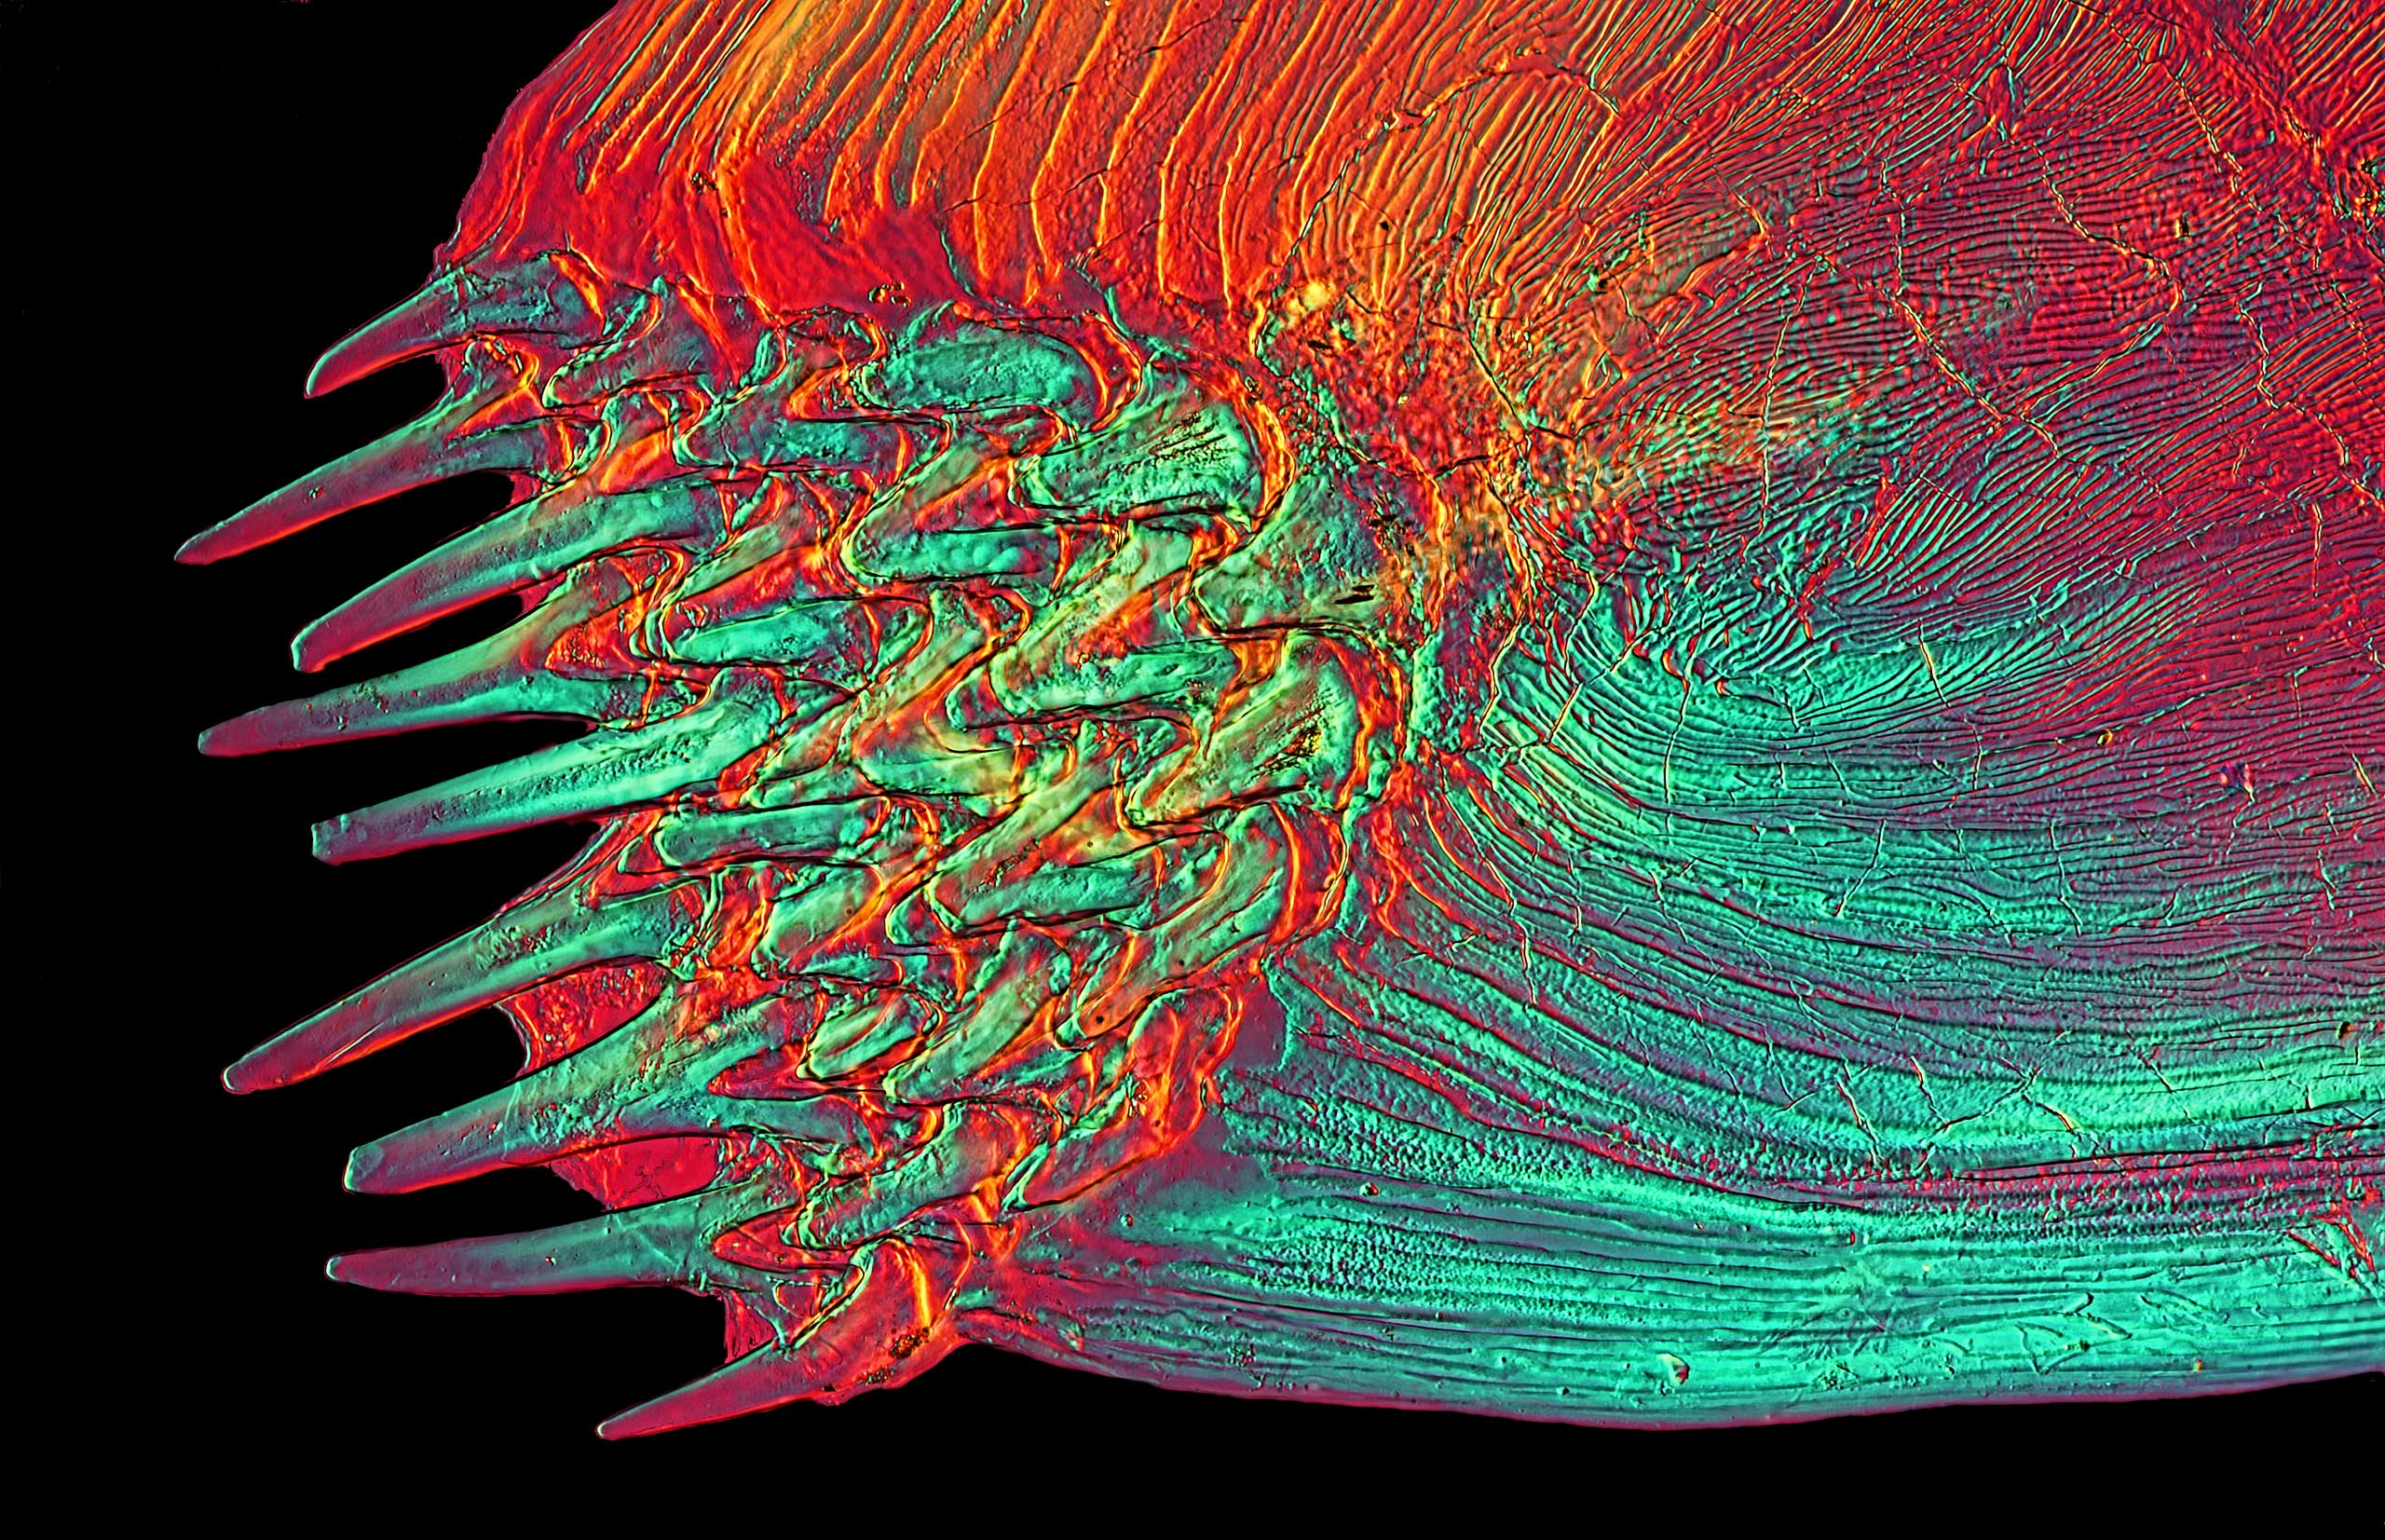 A Solea sp. (fish) at 25x magnification.